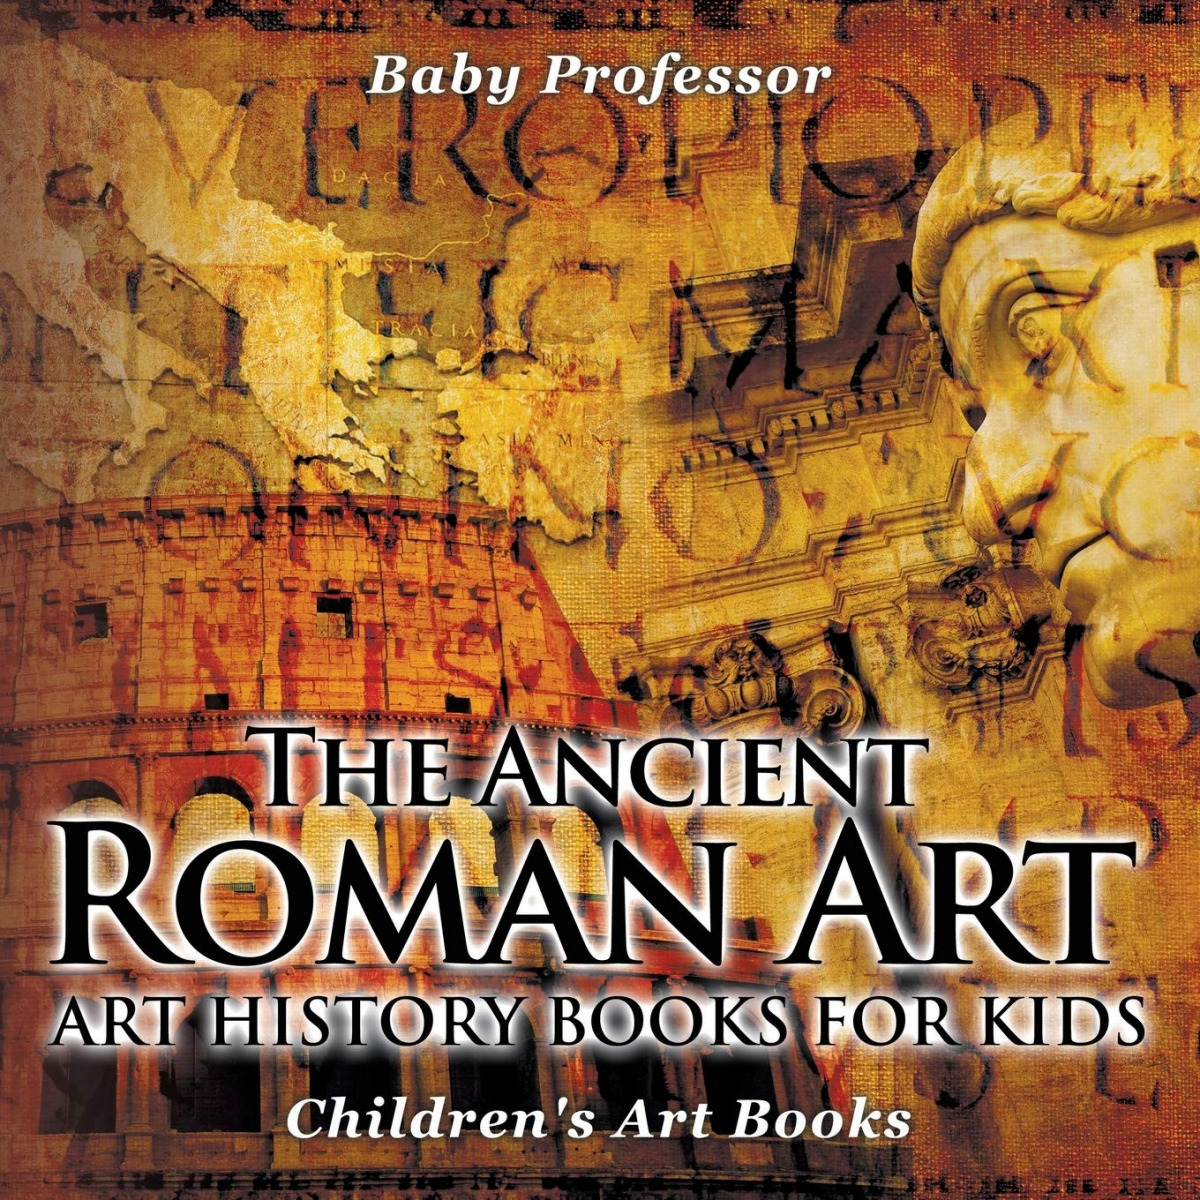 THE ANCIENT ROMAN ART HISTORY BOOKS FOR KIDS